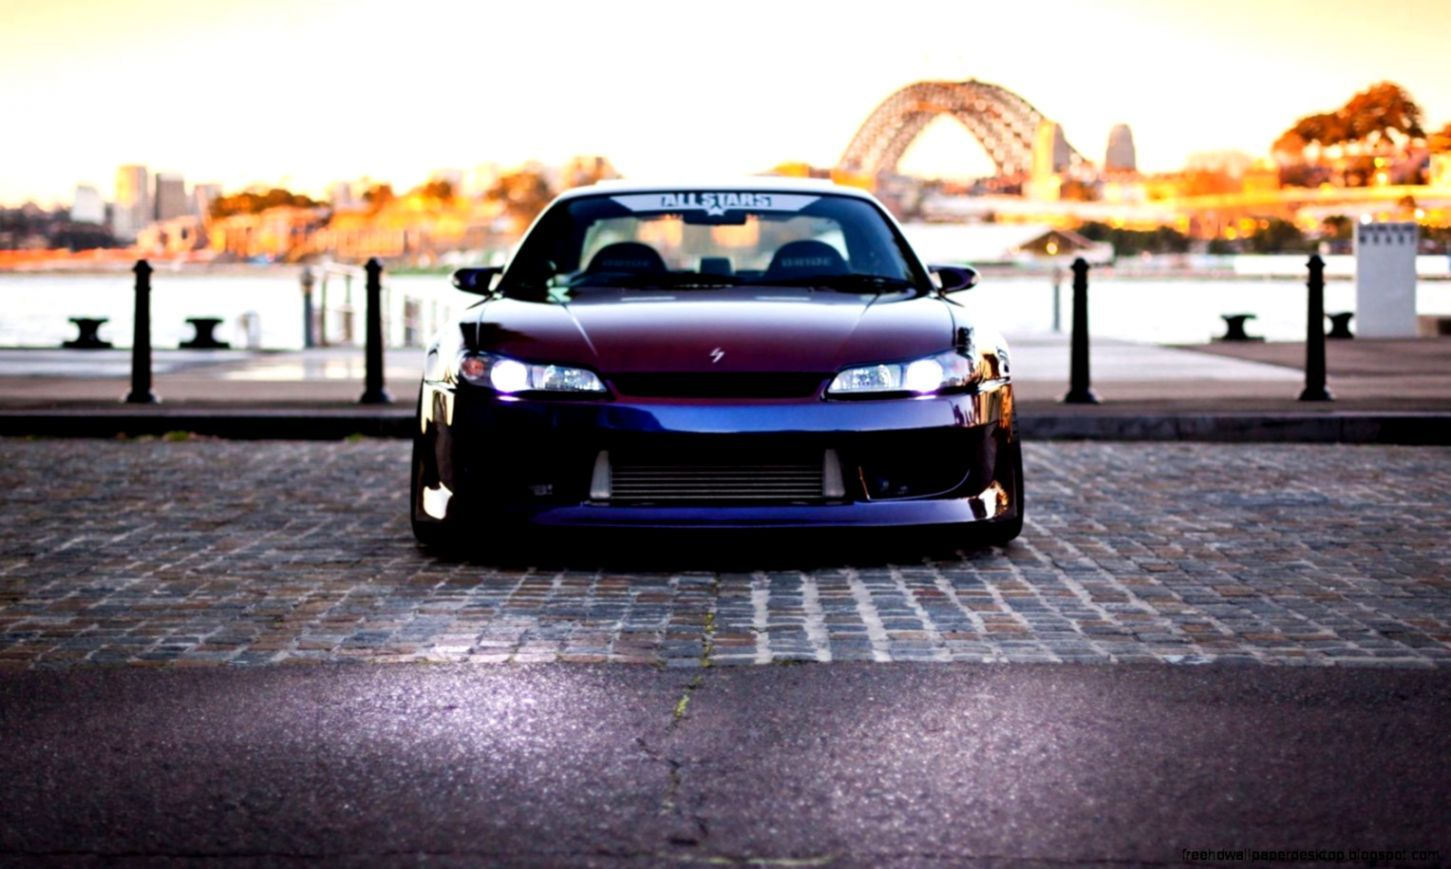 Nissan Silvia S15 Wallpapers Top Free Nissan Silvia S15 Backgrounds Wallpaperaccess